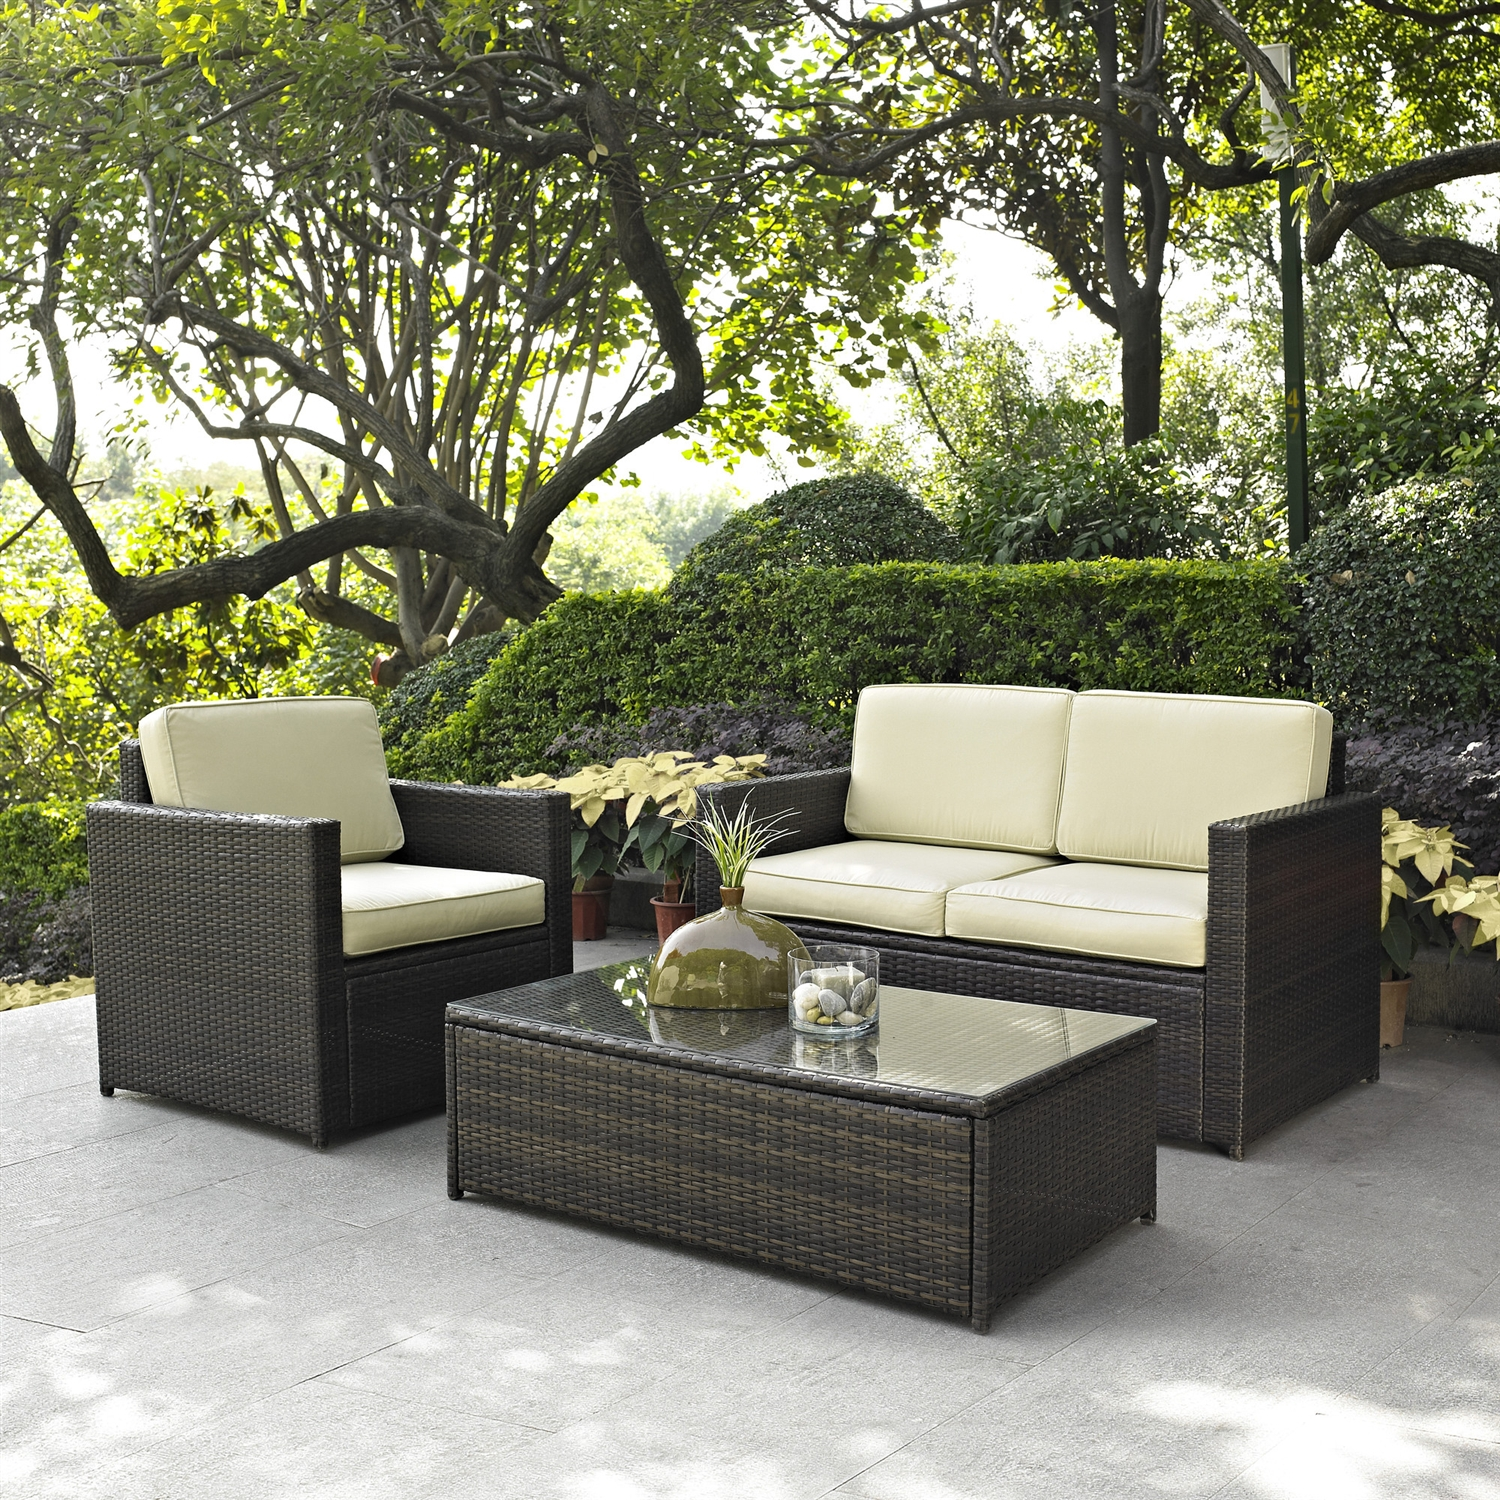 3-Piece Outdoor Patio Furniture Set with Chair Loveseat and Cocktail Table - 3-Piece Outdoor Patio Furniture Set With Chair Loveseat And Cocktail